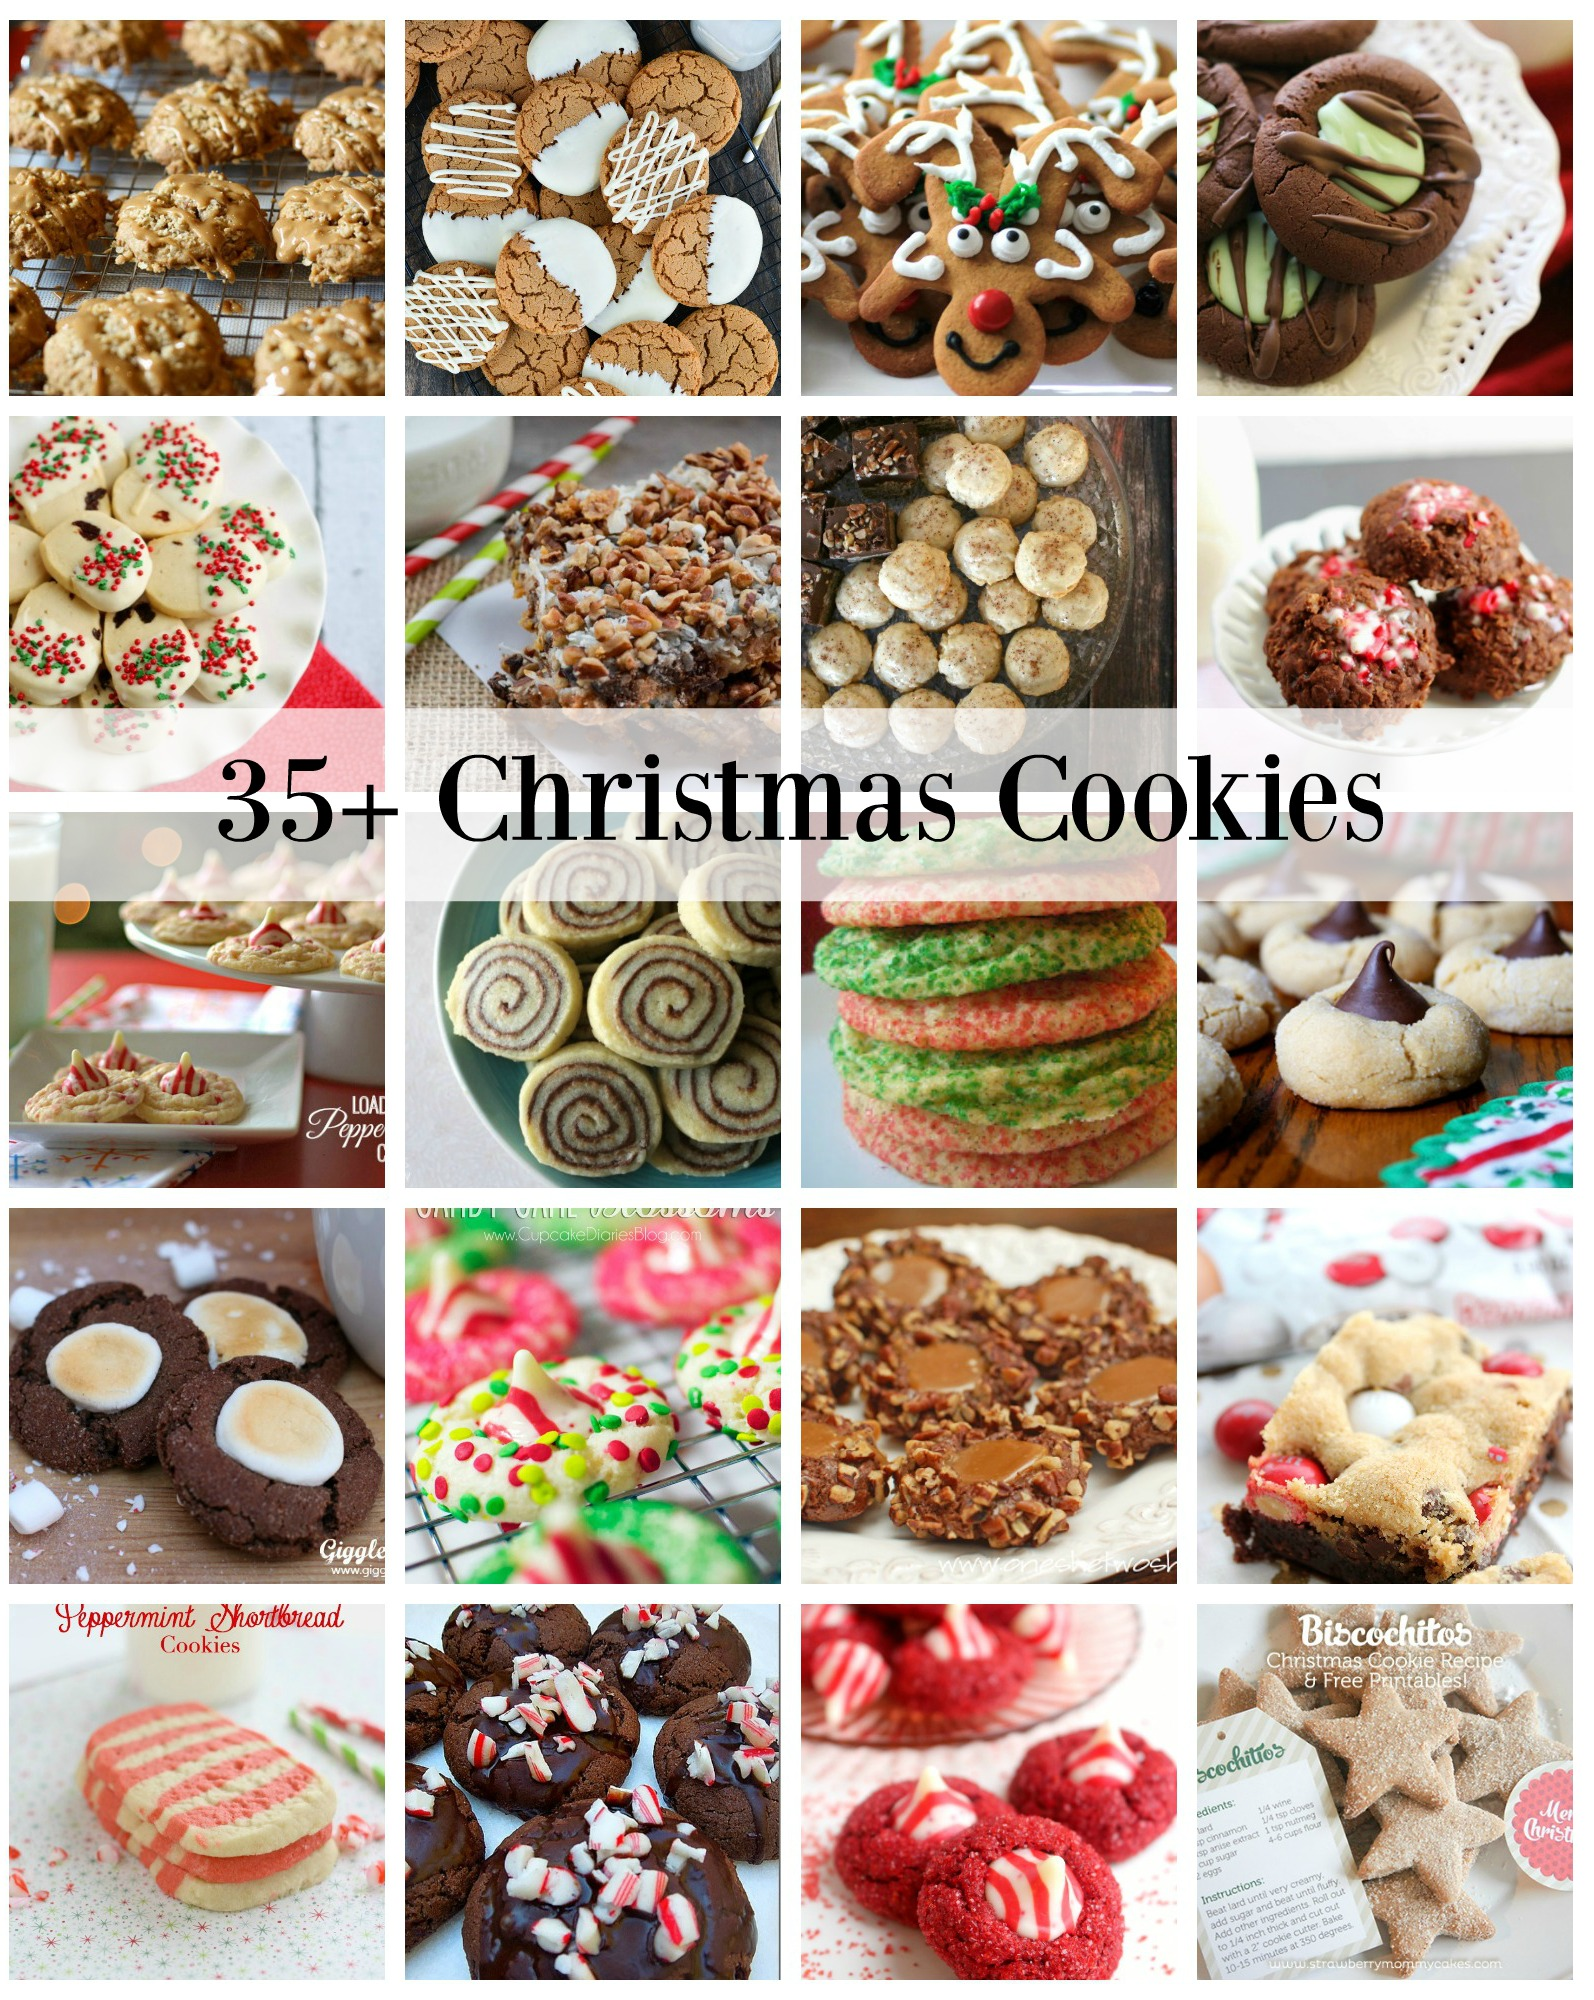 35 Christmas Cookie recipes perfect for goodie plates